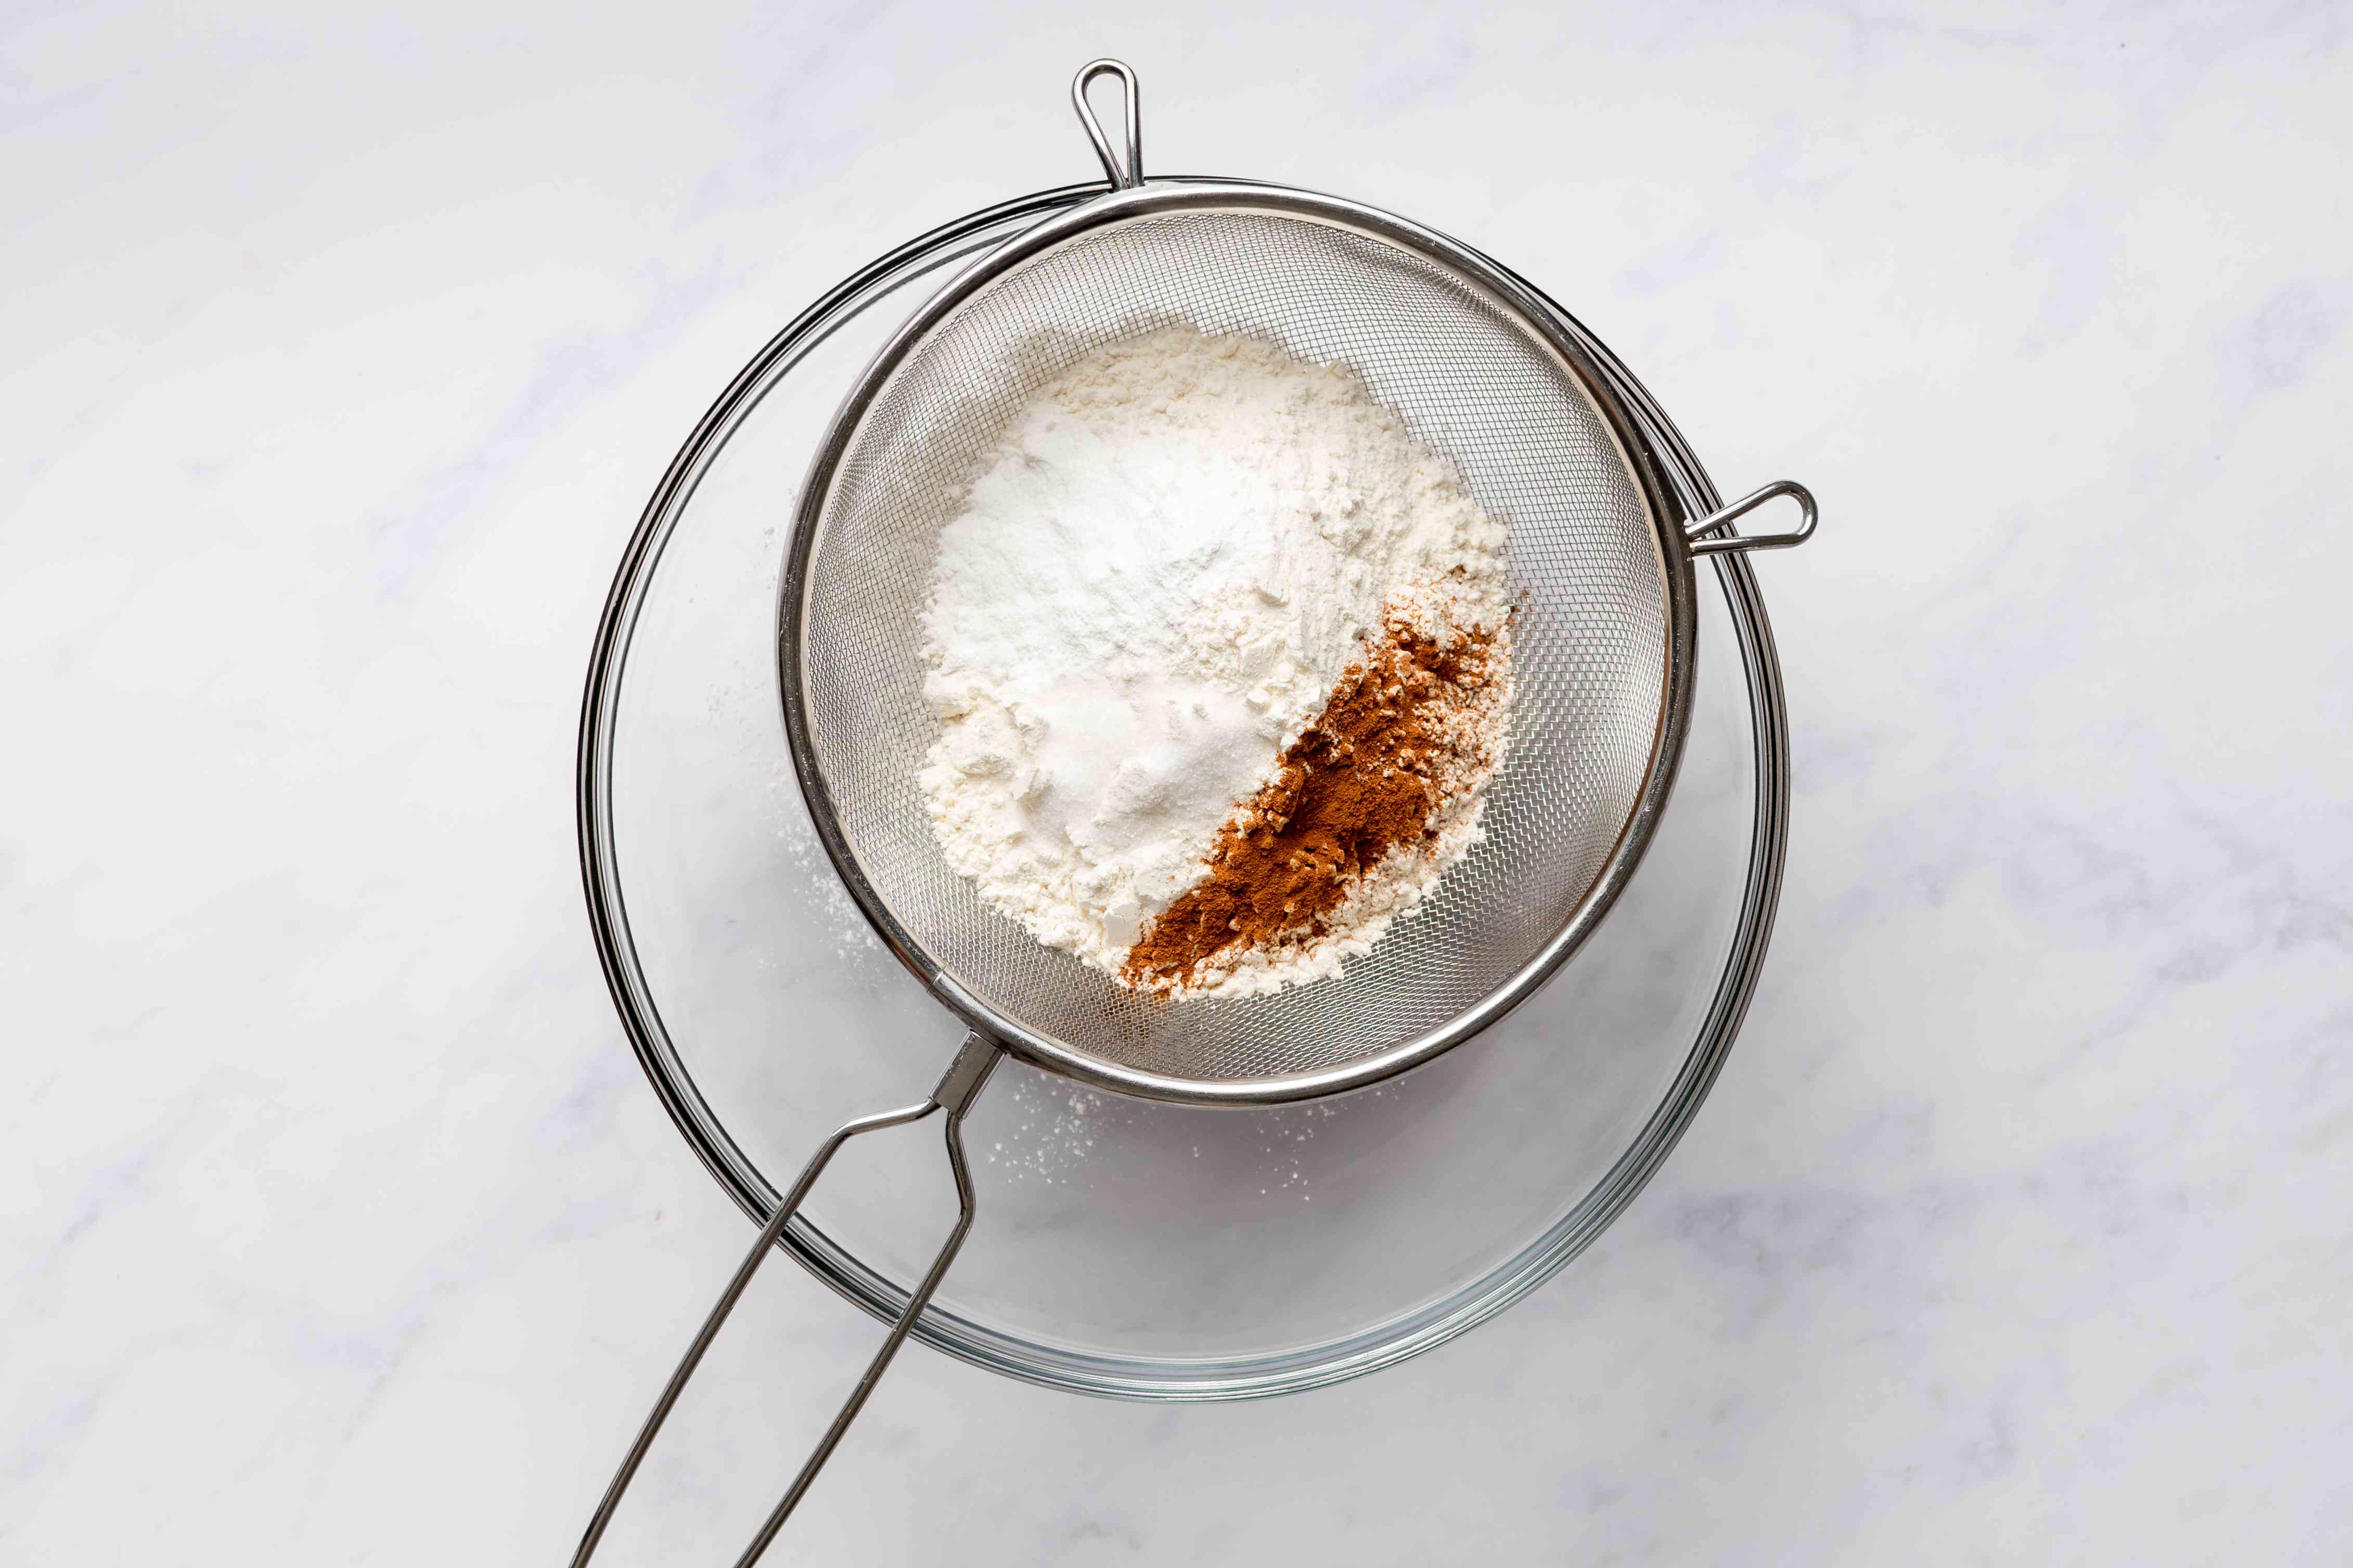 sift together the flour, baking powder, salt, and cinnamon into a bowl